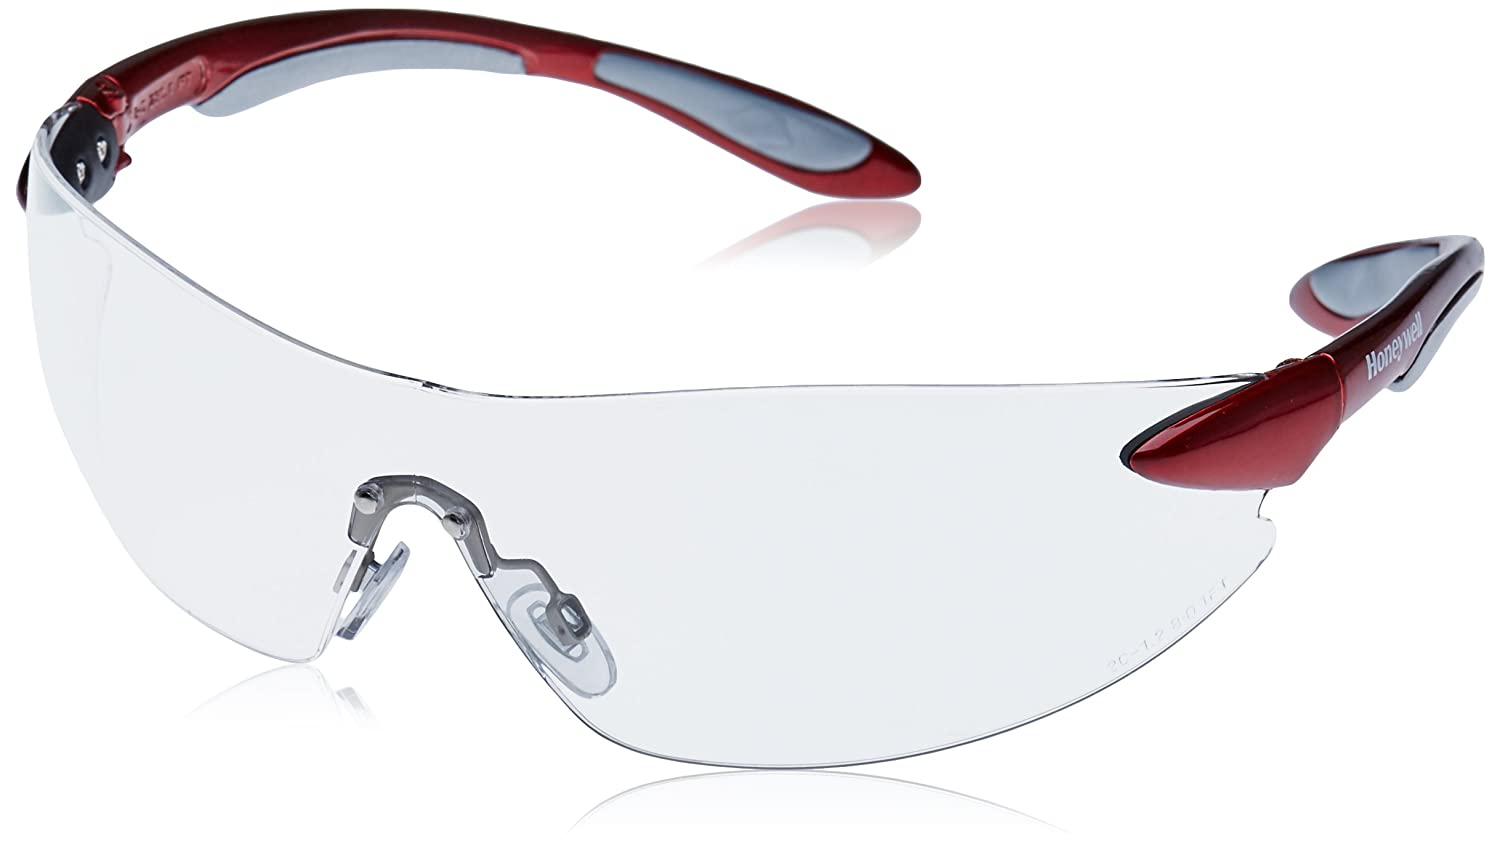 Honeywell 1017081 Ignite Safety Eyewear Red/Silver Frame with Clear Fogban/Anti-Scratch Lens